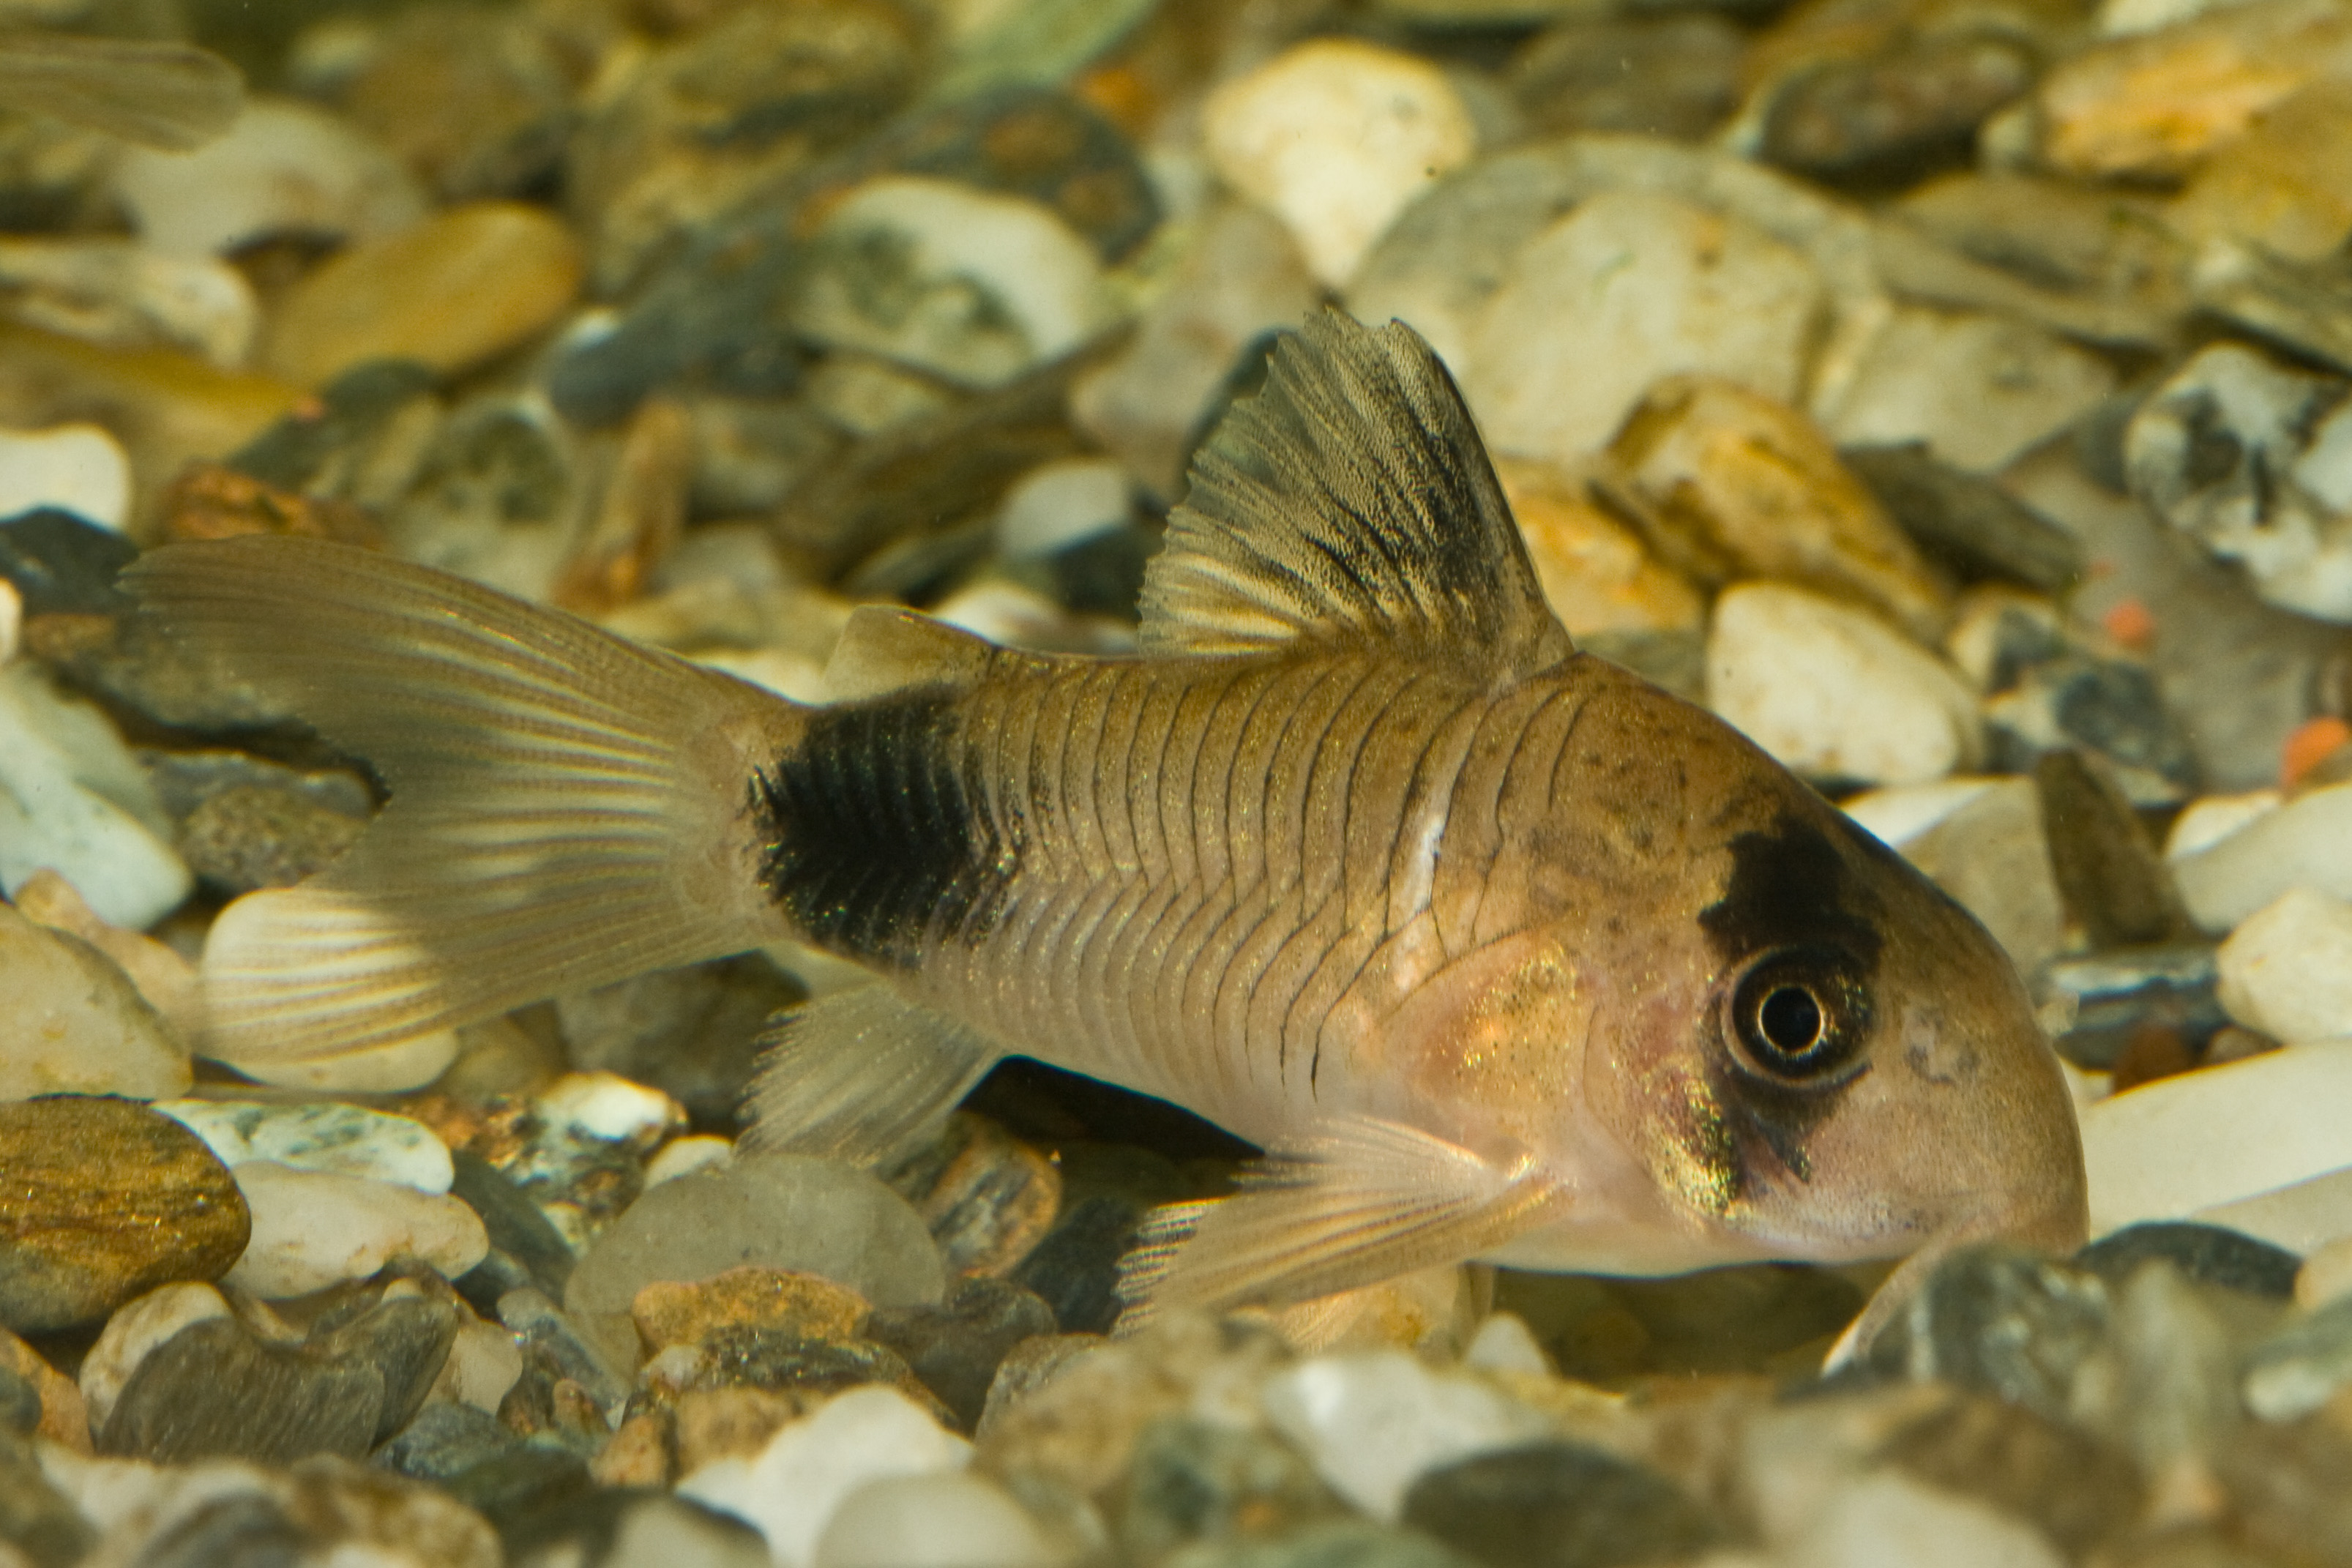 Badman's Tropical Fish - Archives: Treating ick with corys ...